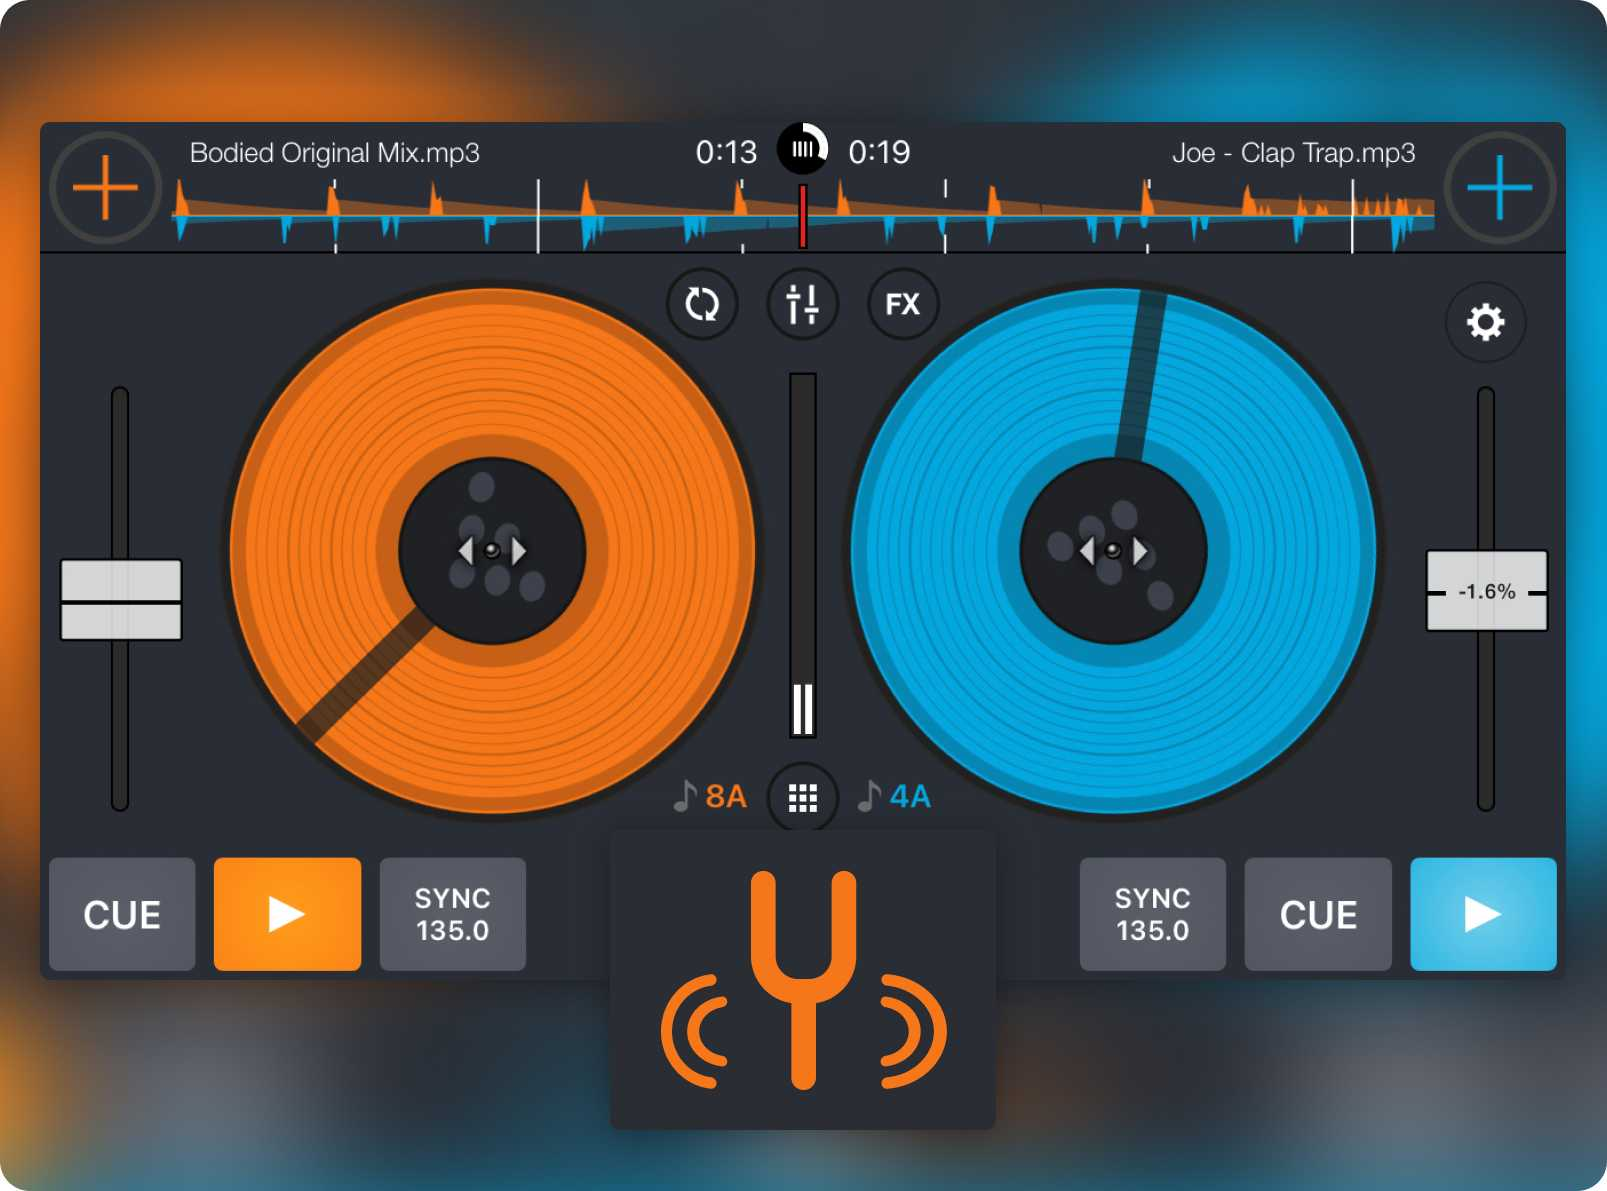 Cross DJ Free's turntable view and Key detection